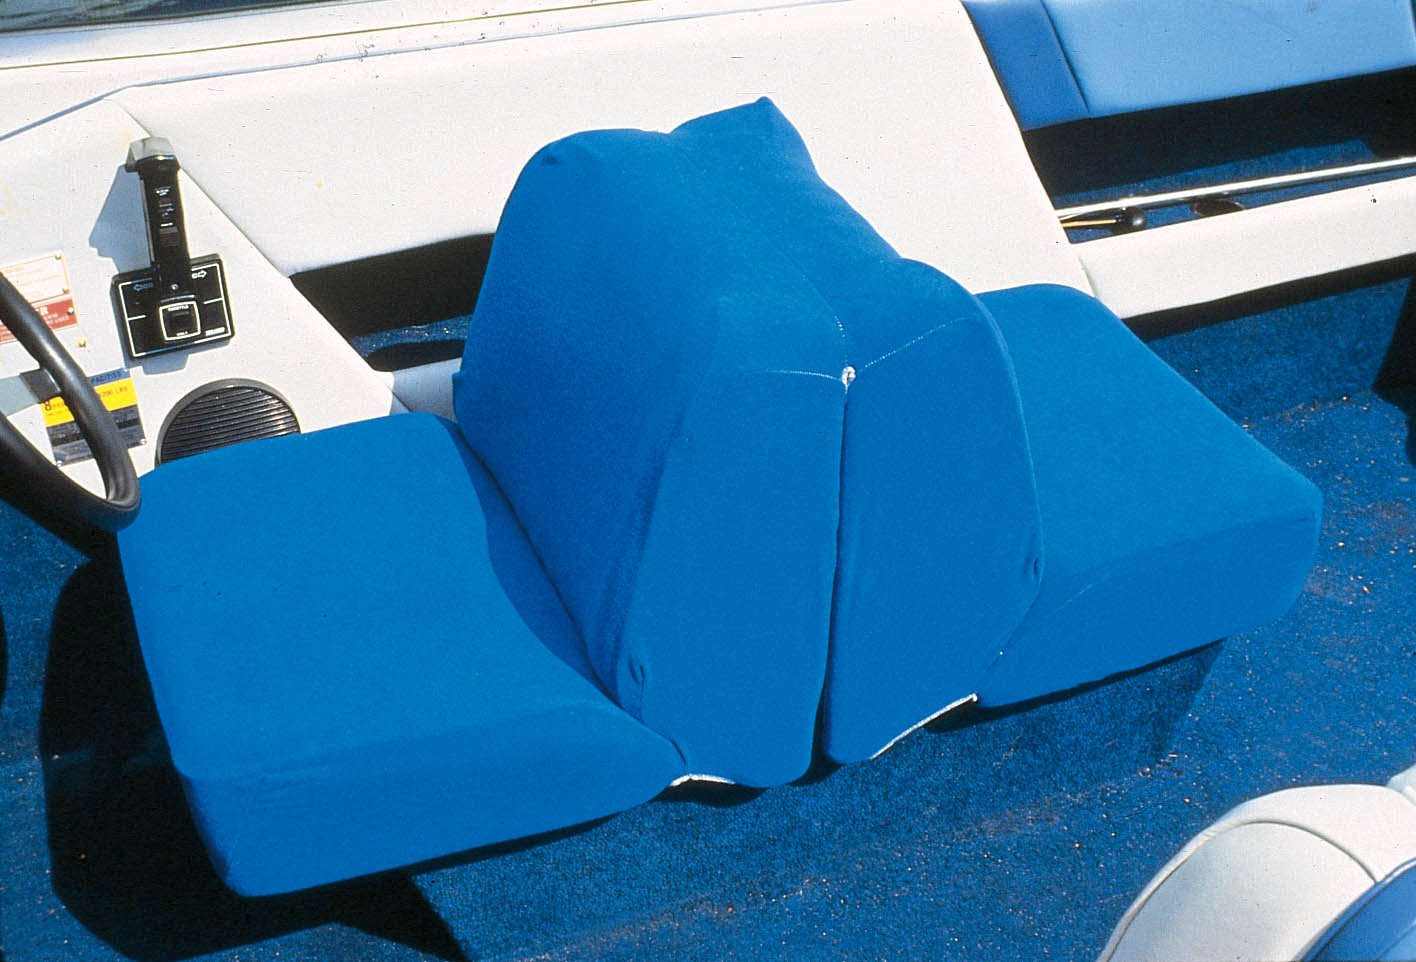 Boat Seats Covers For Sale Qld Boat Sales Stone Harbor Nj